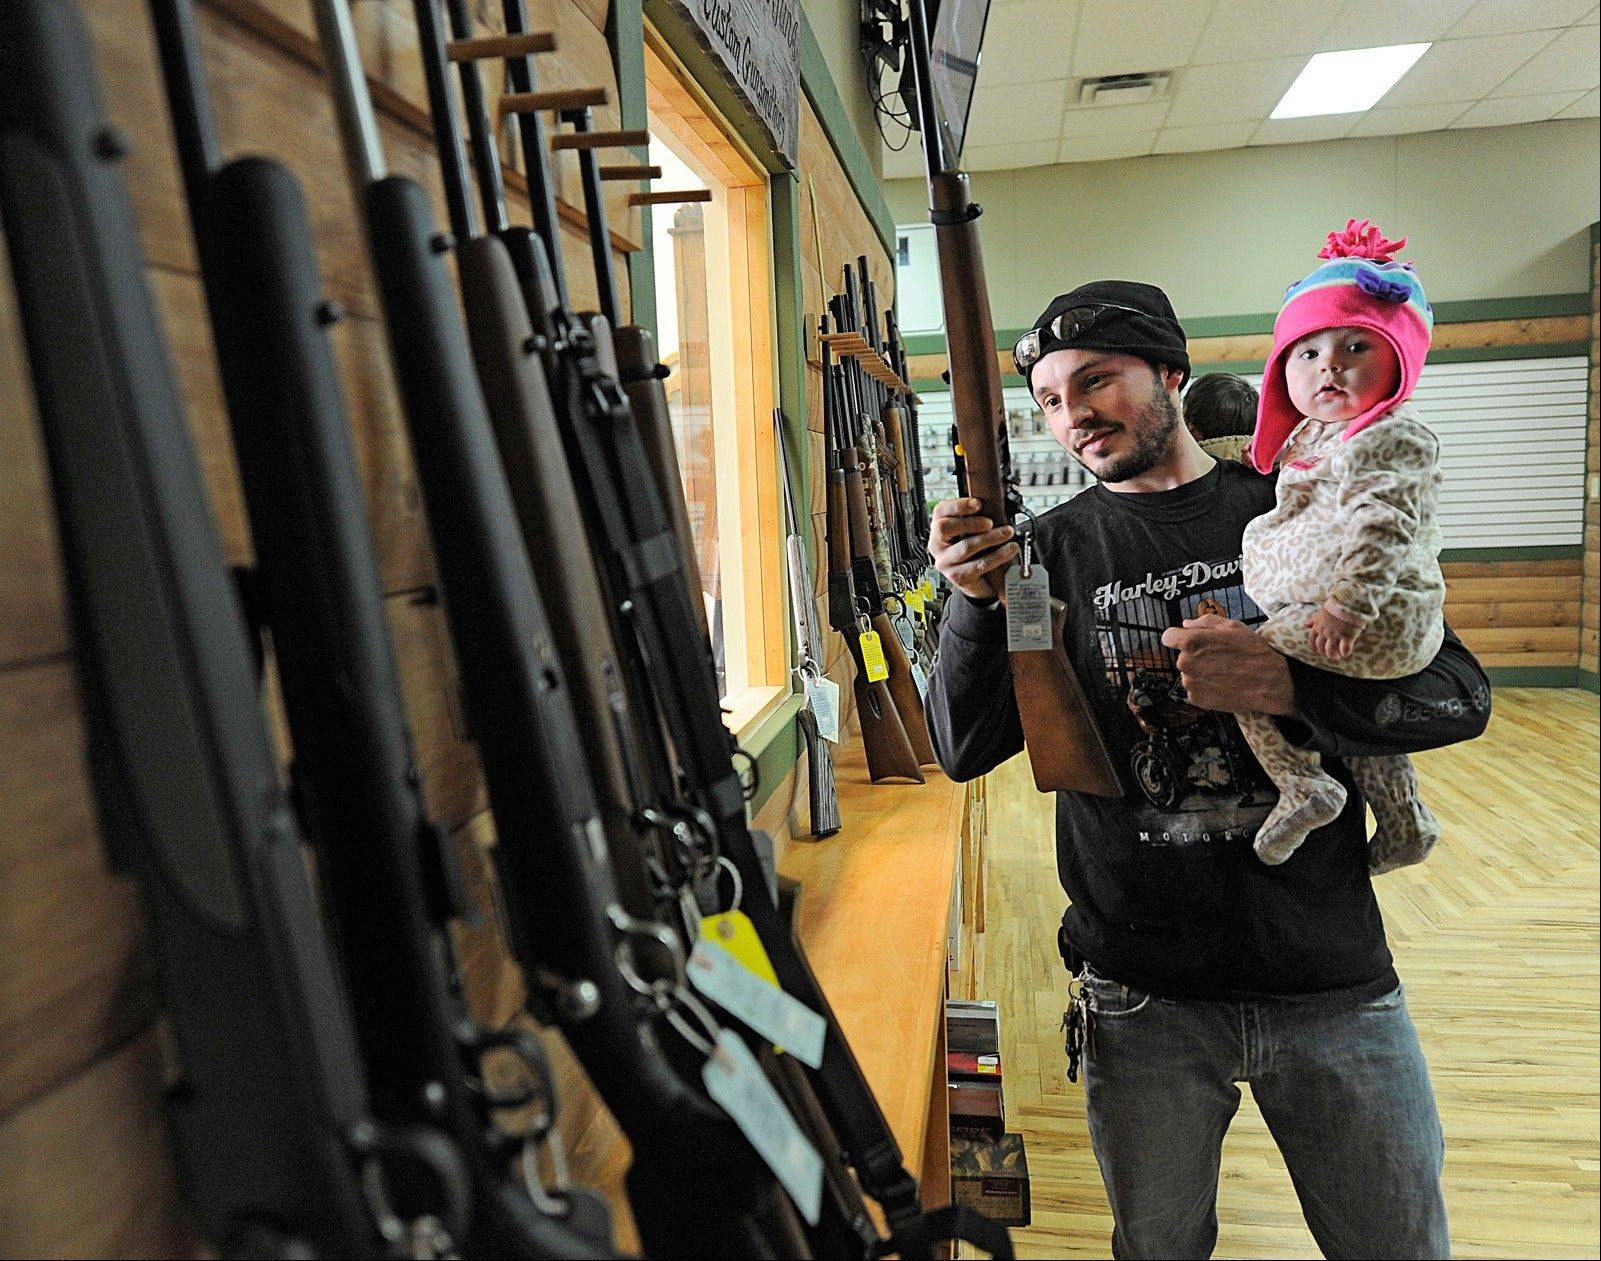 Tyler Hook handles a riffle while holding his 11-month old daughter Emma at Highsmith Guns in Greenfield, Ind. Hook, a U.S. Army veteran who just recently served in Southern Afghanistan and Kandahar, is a gun enthusiast. Highsmith Guns is seeing a rush on semi-automatic riffles with the AR-15 and AK-47 as the most popular.